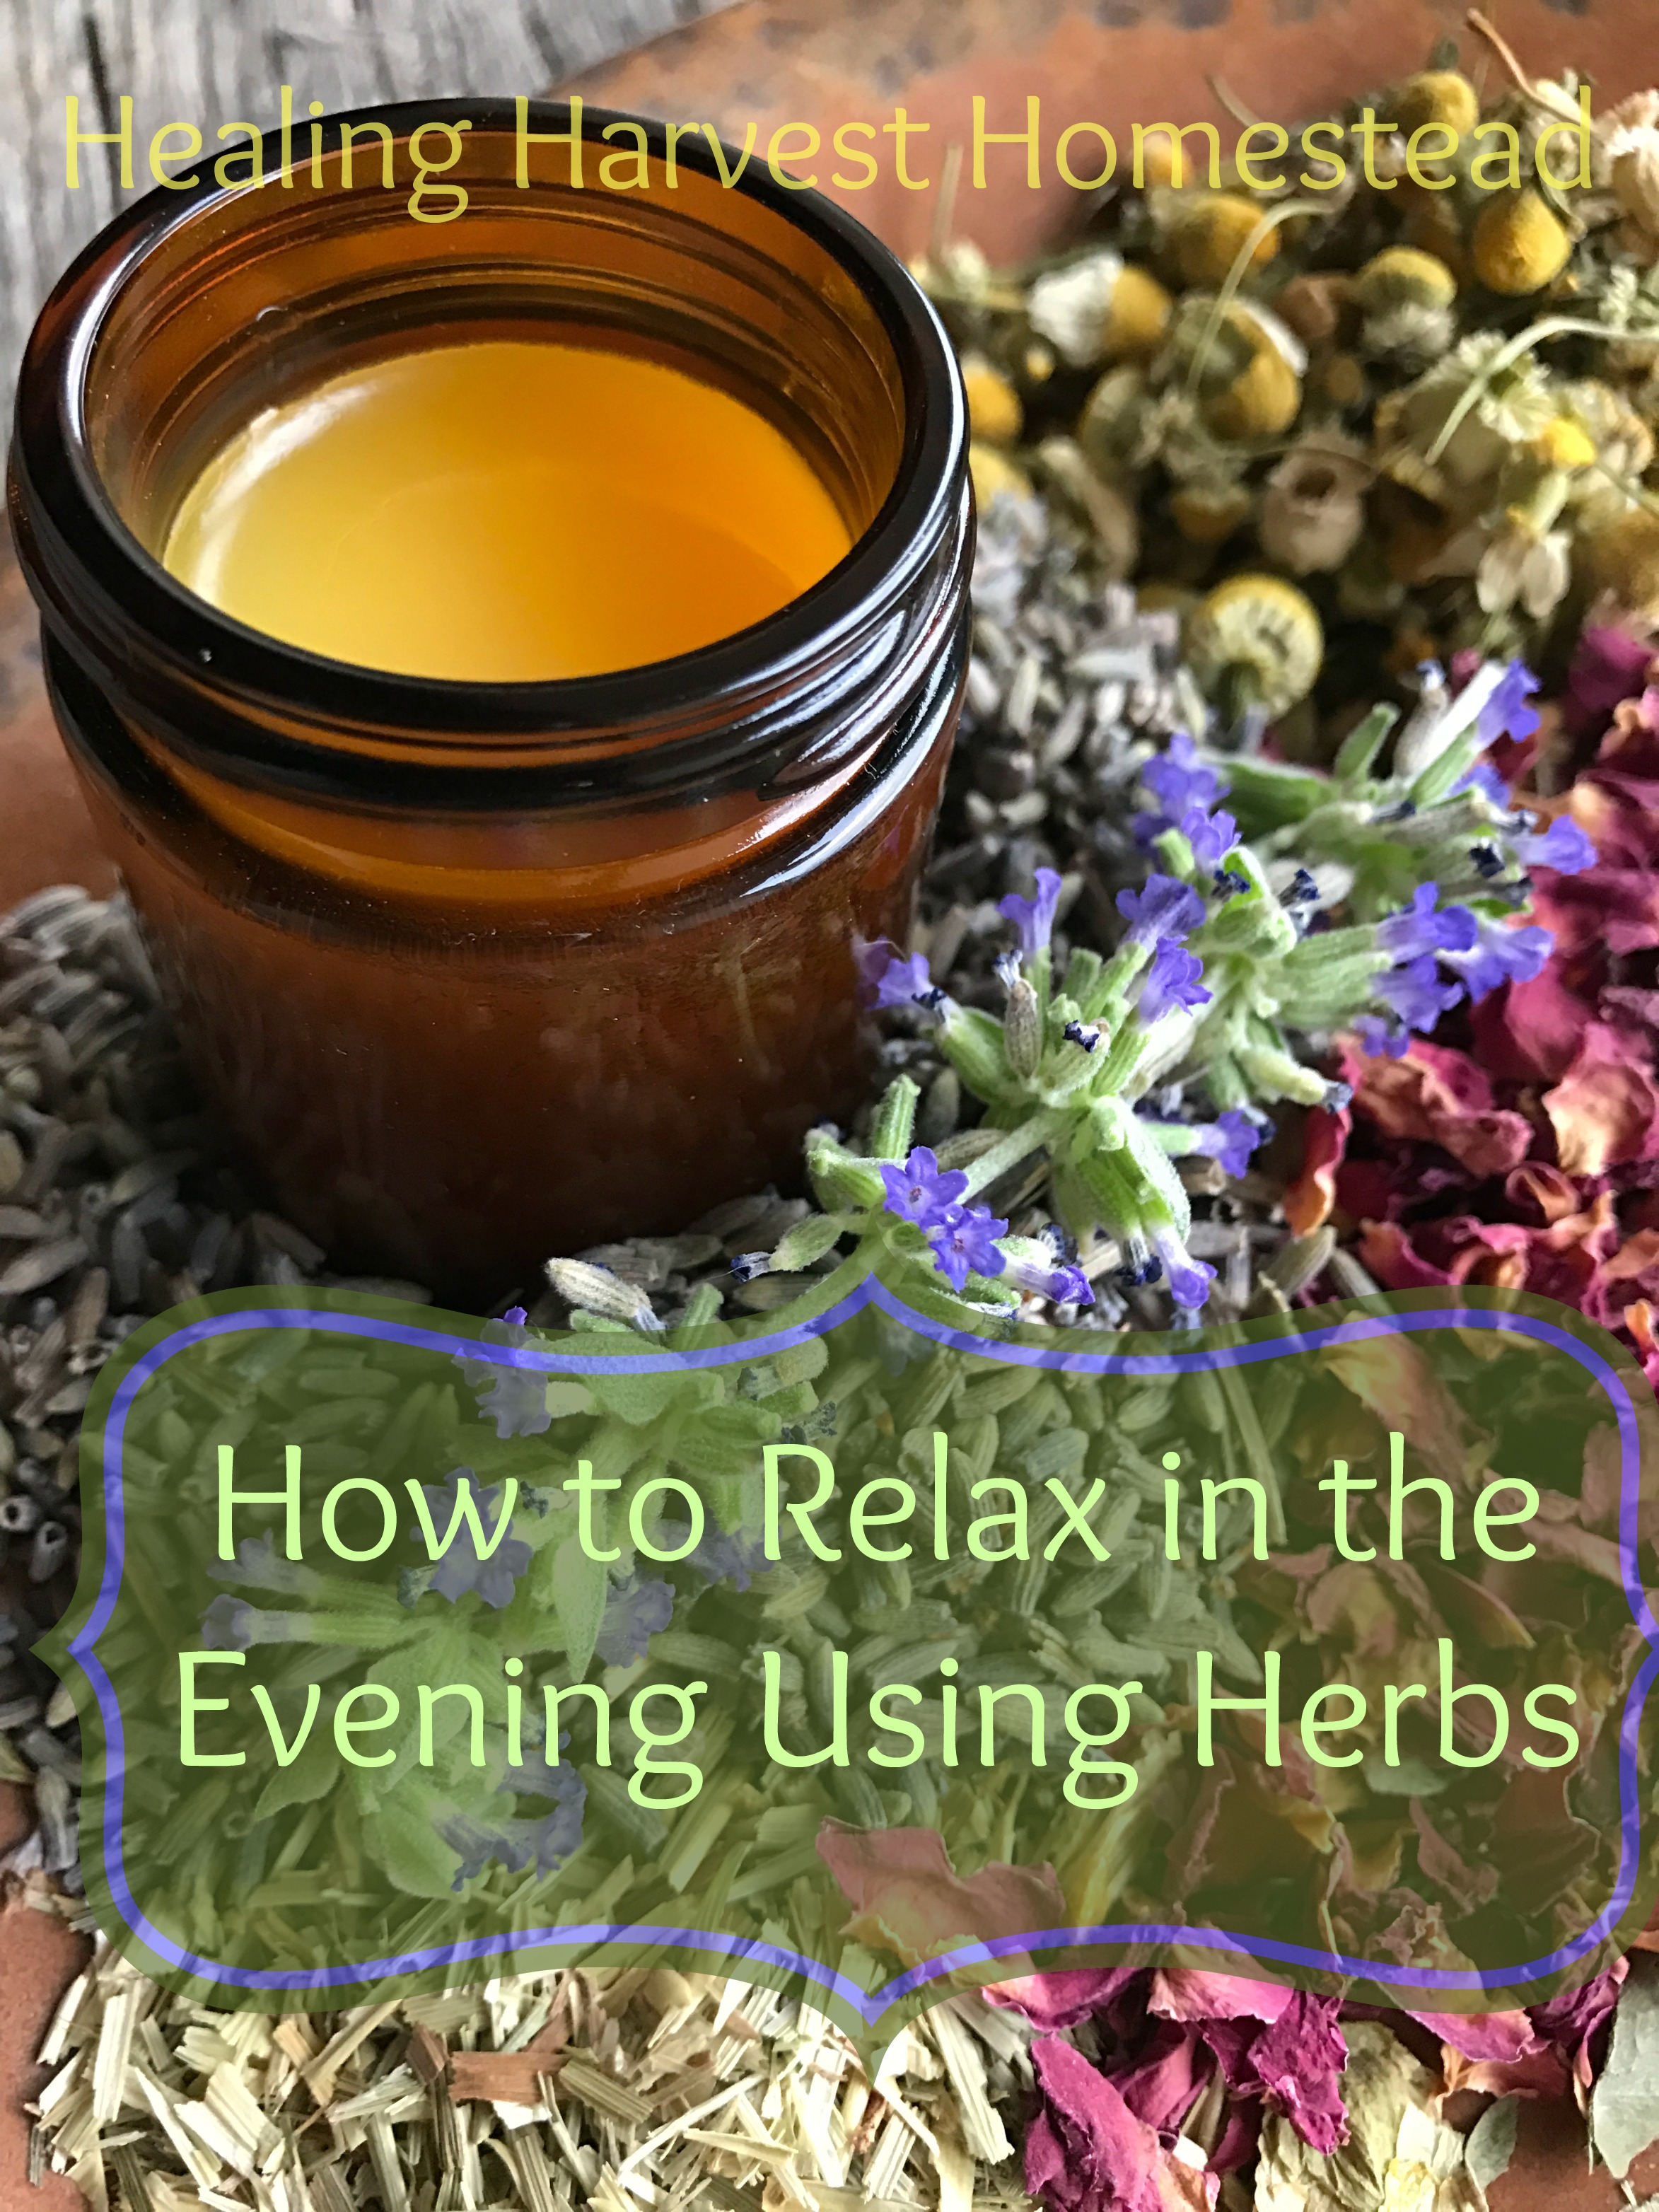 Herbs are probably the single most effective and healthy way to relax in the evening! Help your body deal with stress, anxiety, and just calm down before bedtime! You won't want to miss these safe, natural, herbal remedies!